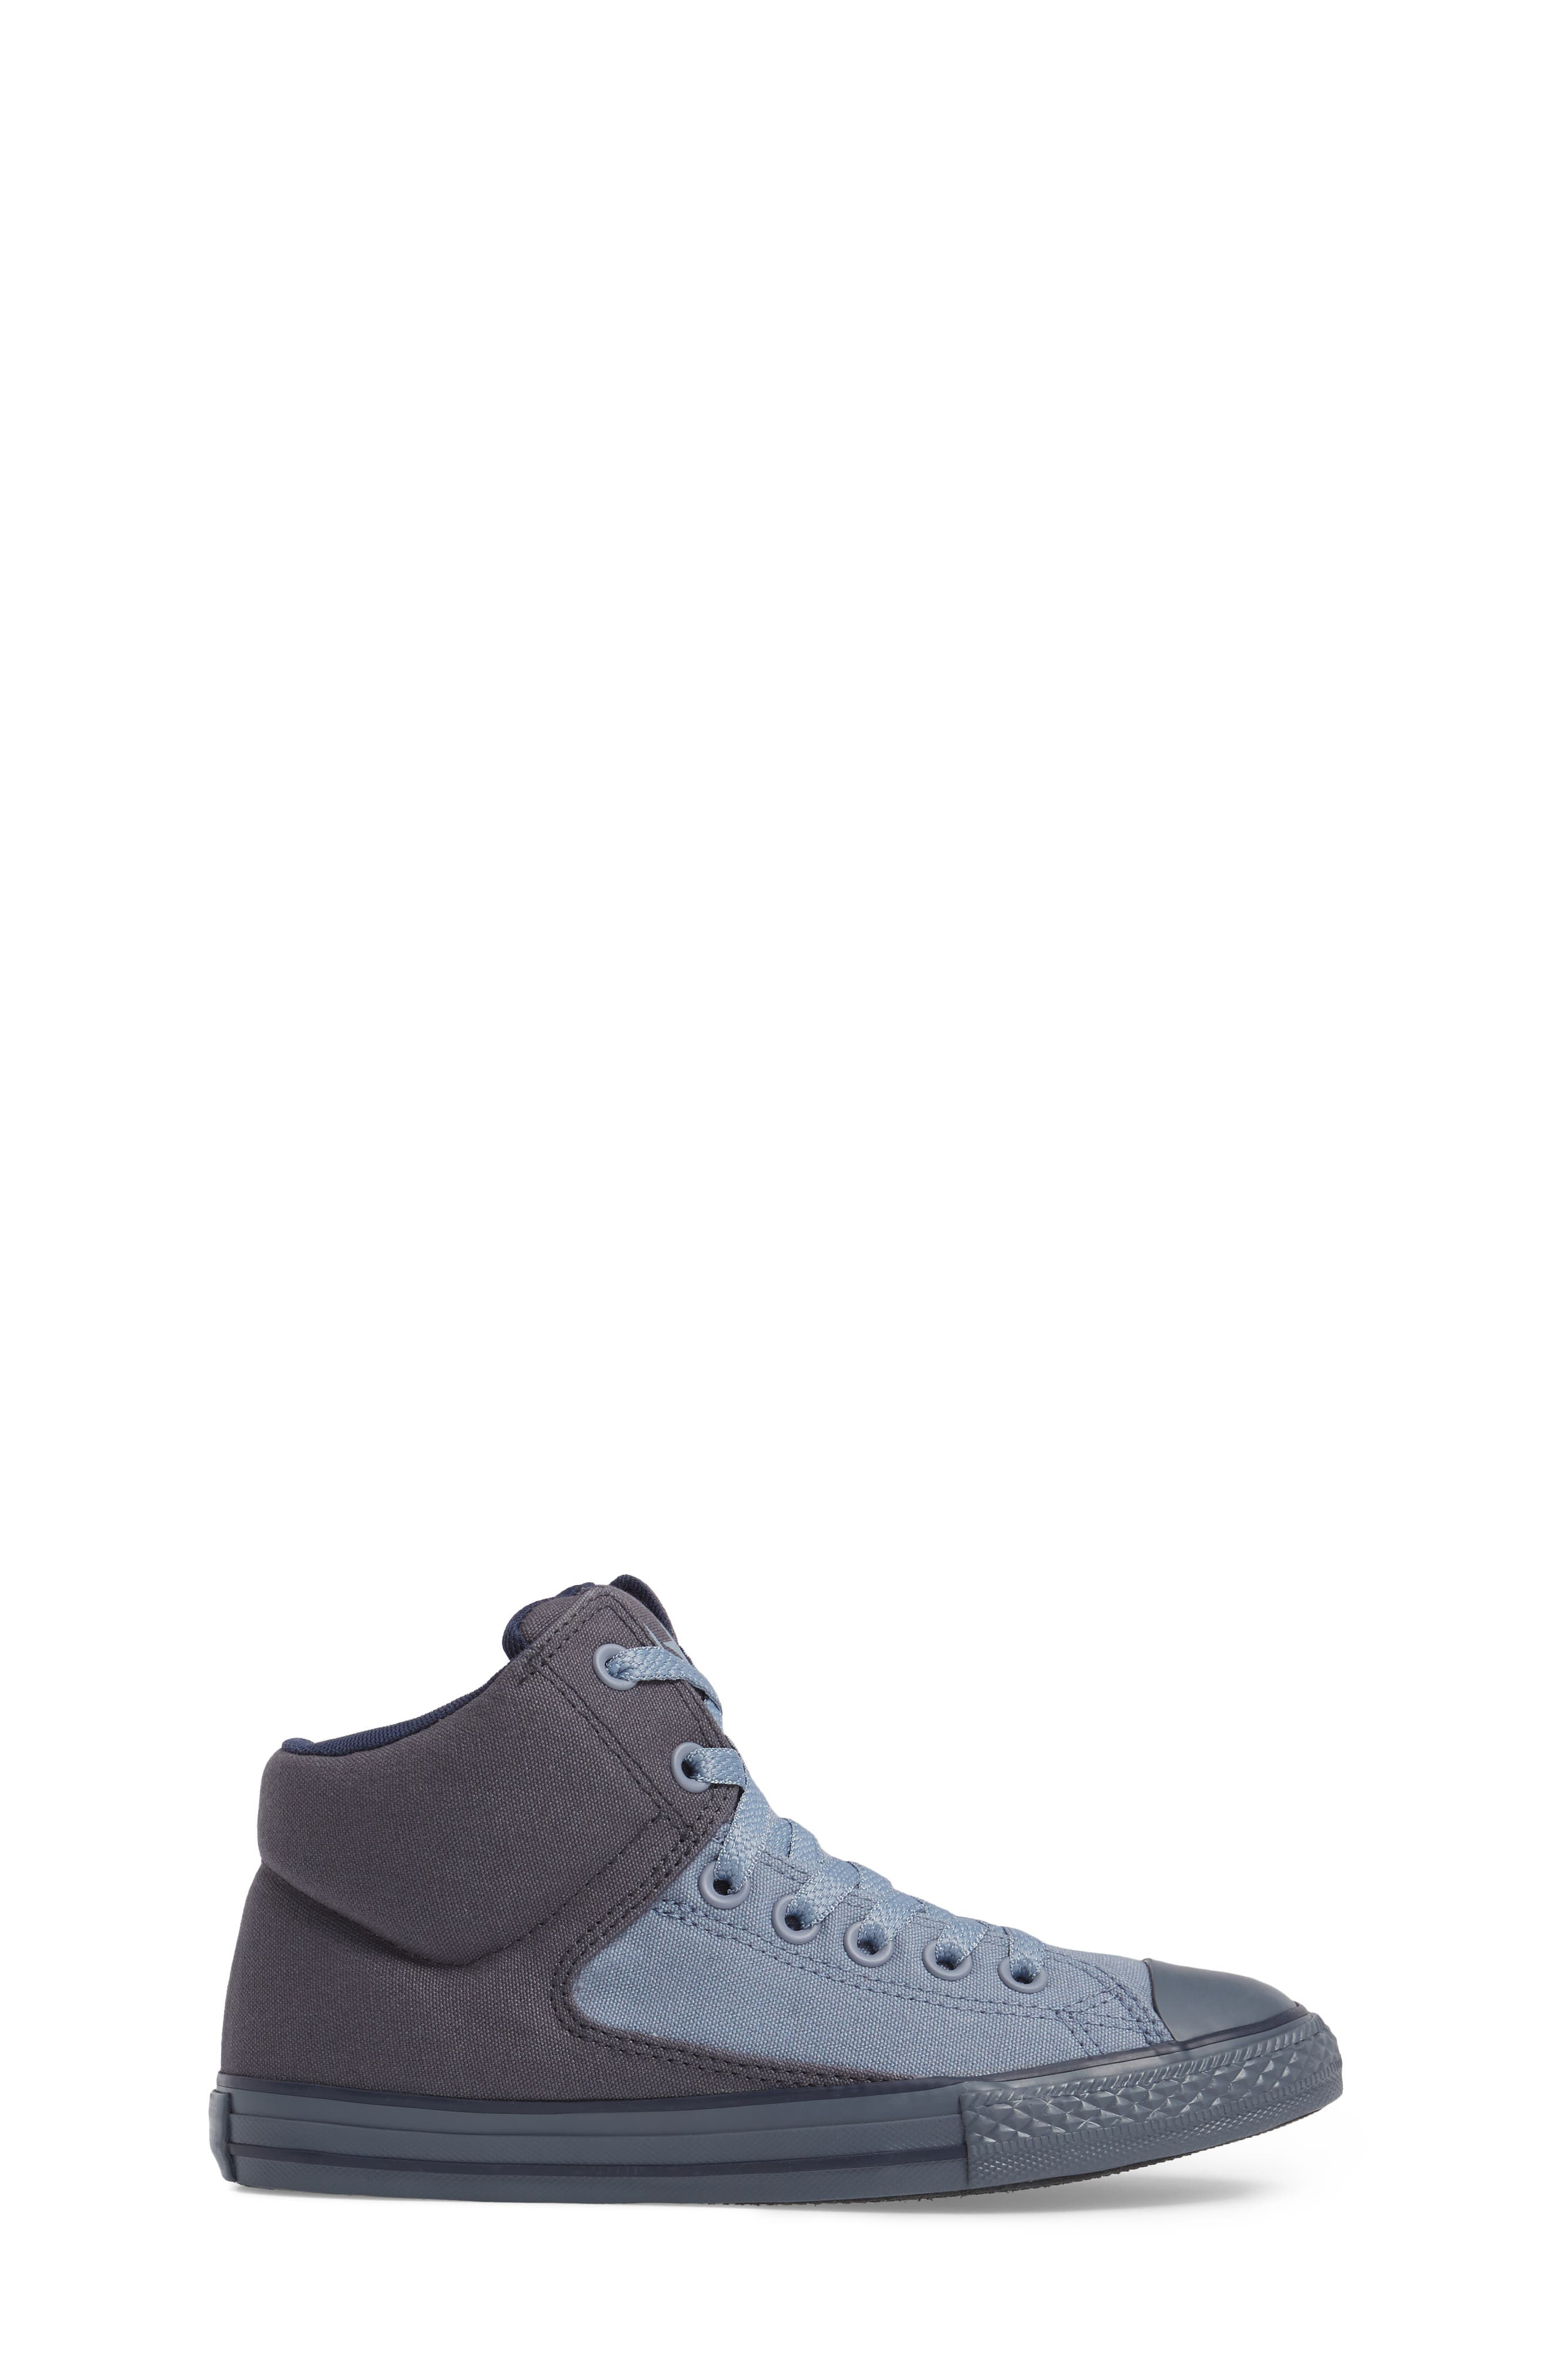 Chuck Taylor<sup>®</sup> All Star<sup>®</sup> High Street High Top Sneaker,                             Alternate thumbnail 3, color,                             Sharkskin Canvas